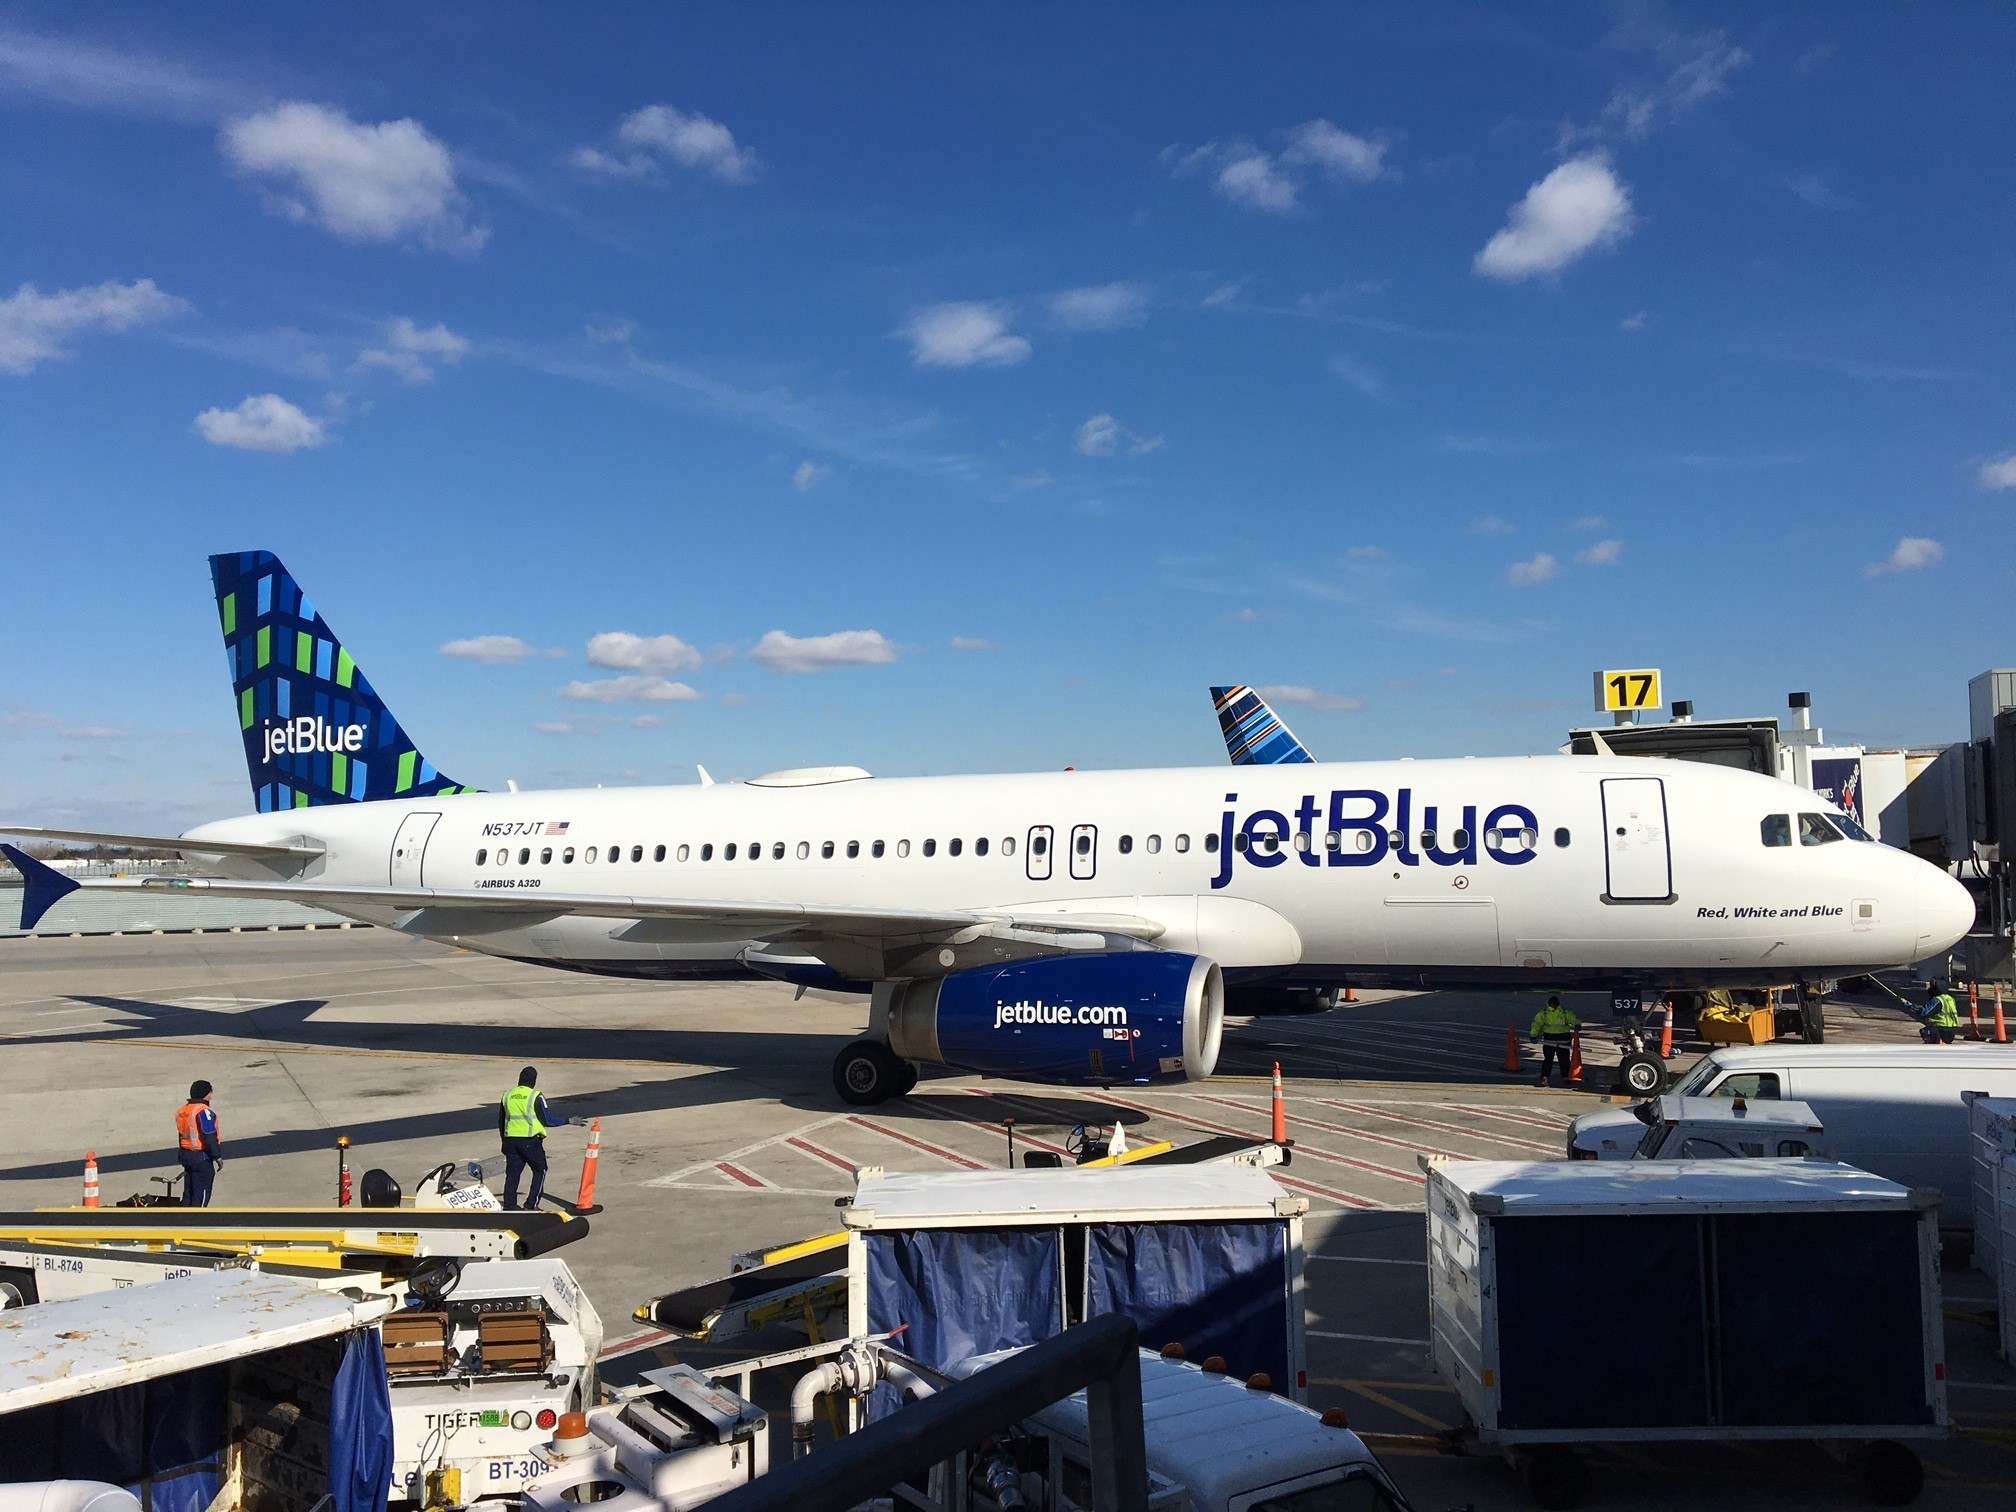 """JetBlue's """"Highrise"""" tailfin design at New York's John F. Kennedy International Airport on February 16, 2017. (Photo: Business Wire)"""